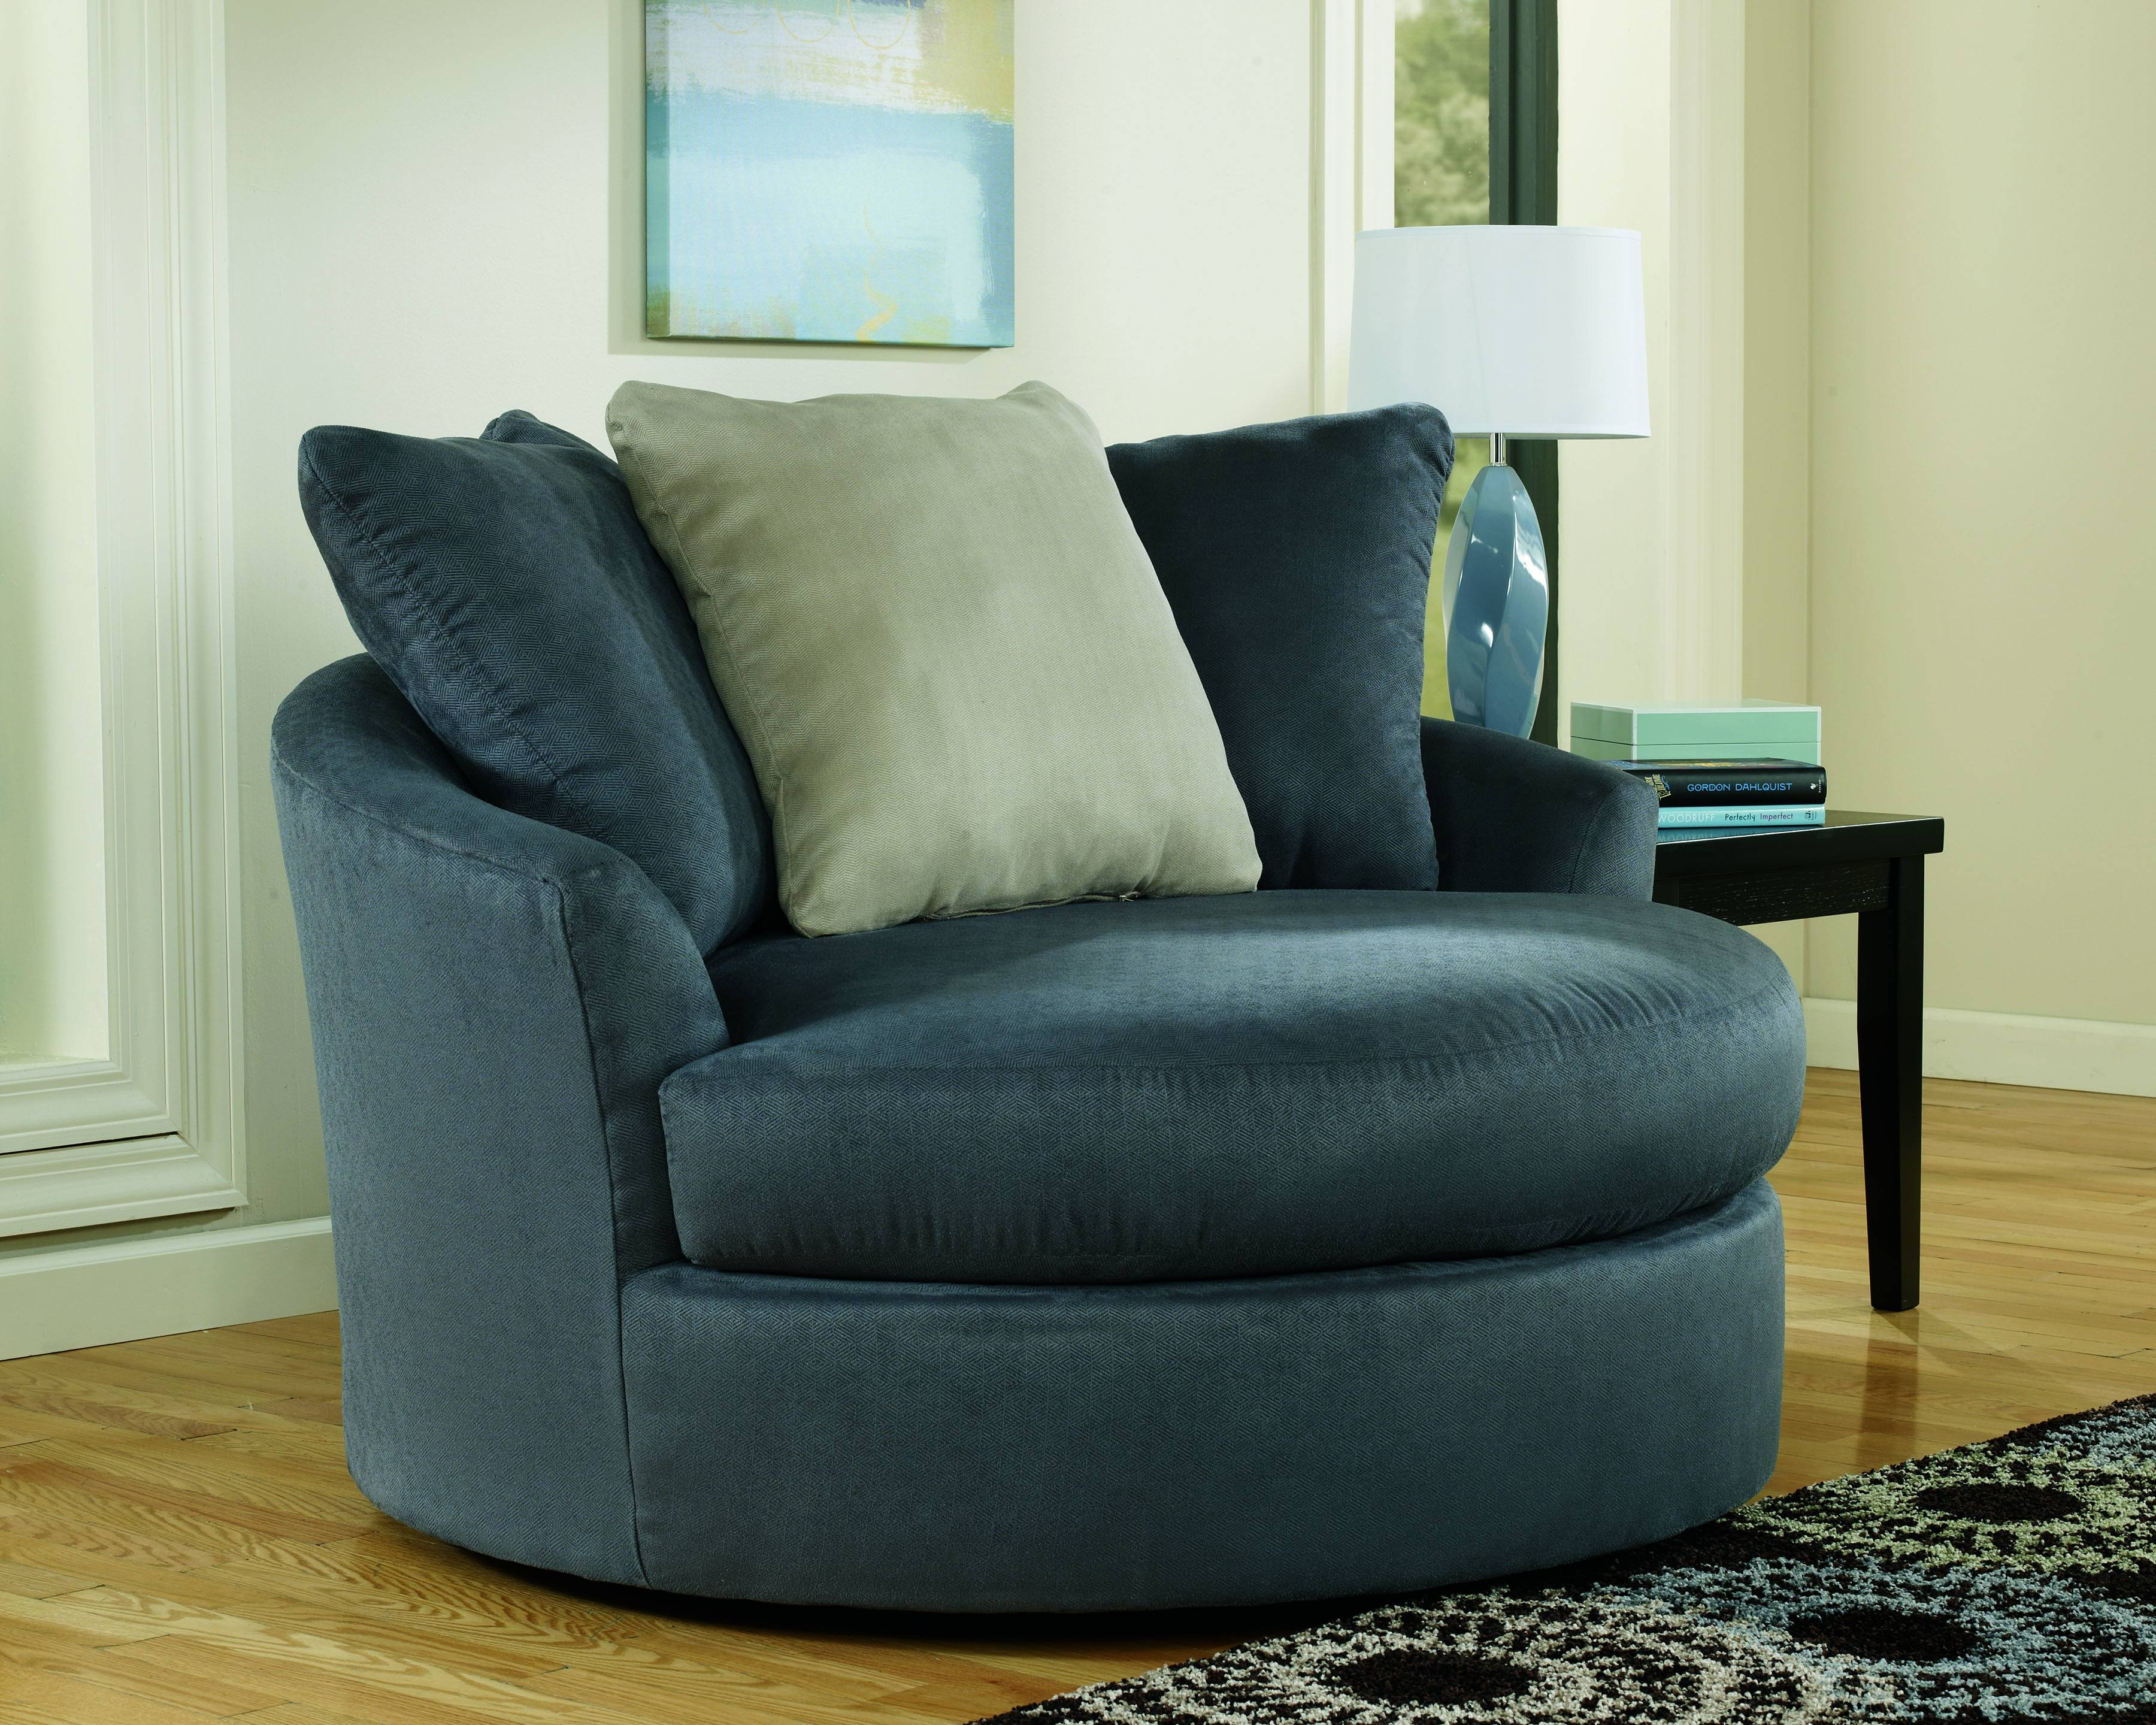 Best 30 of Circle Sofa Chairs